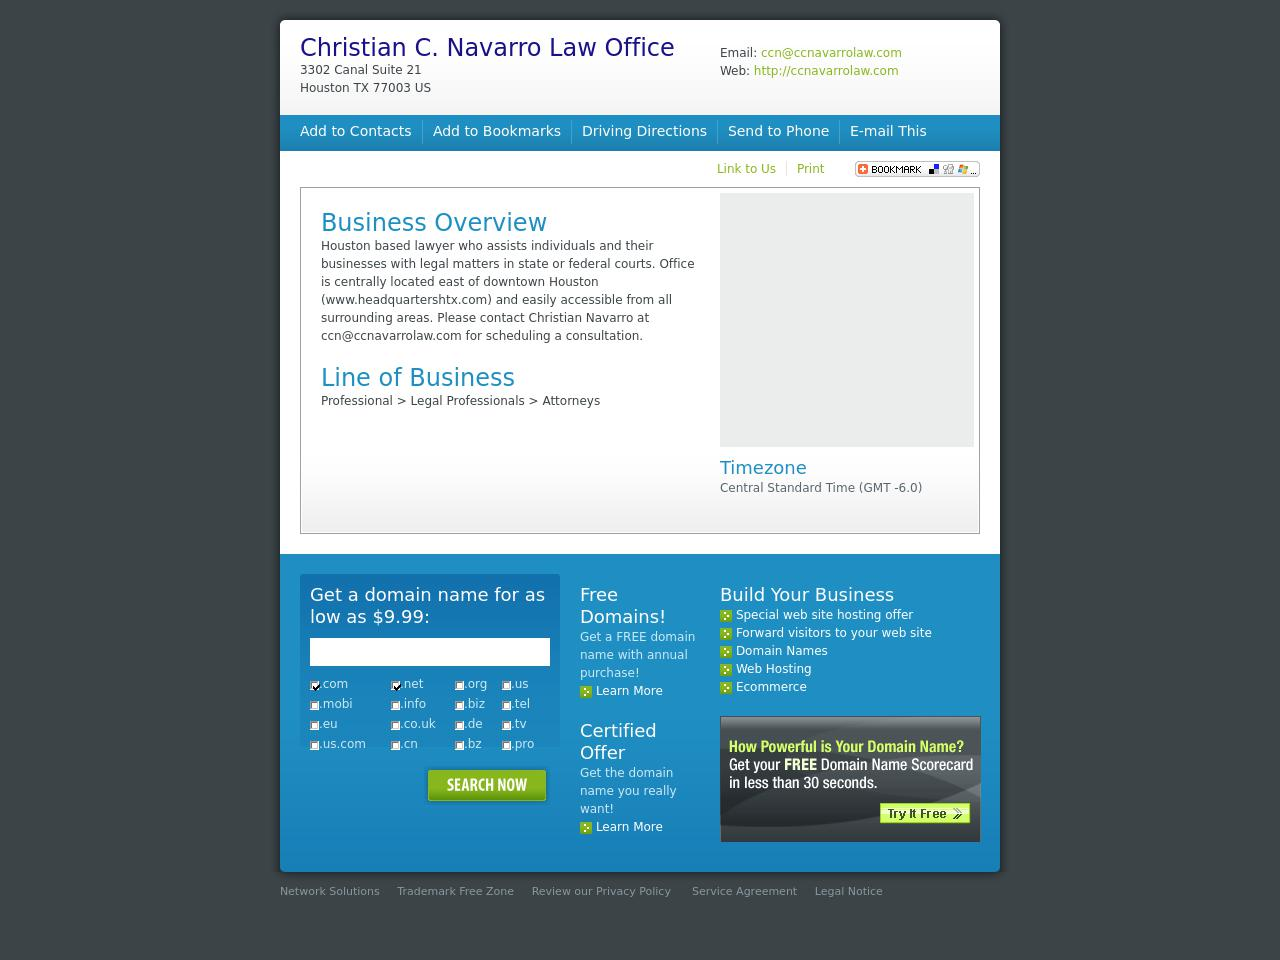 Christian C. Navarro Law Office - Houston TX Lawyers